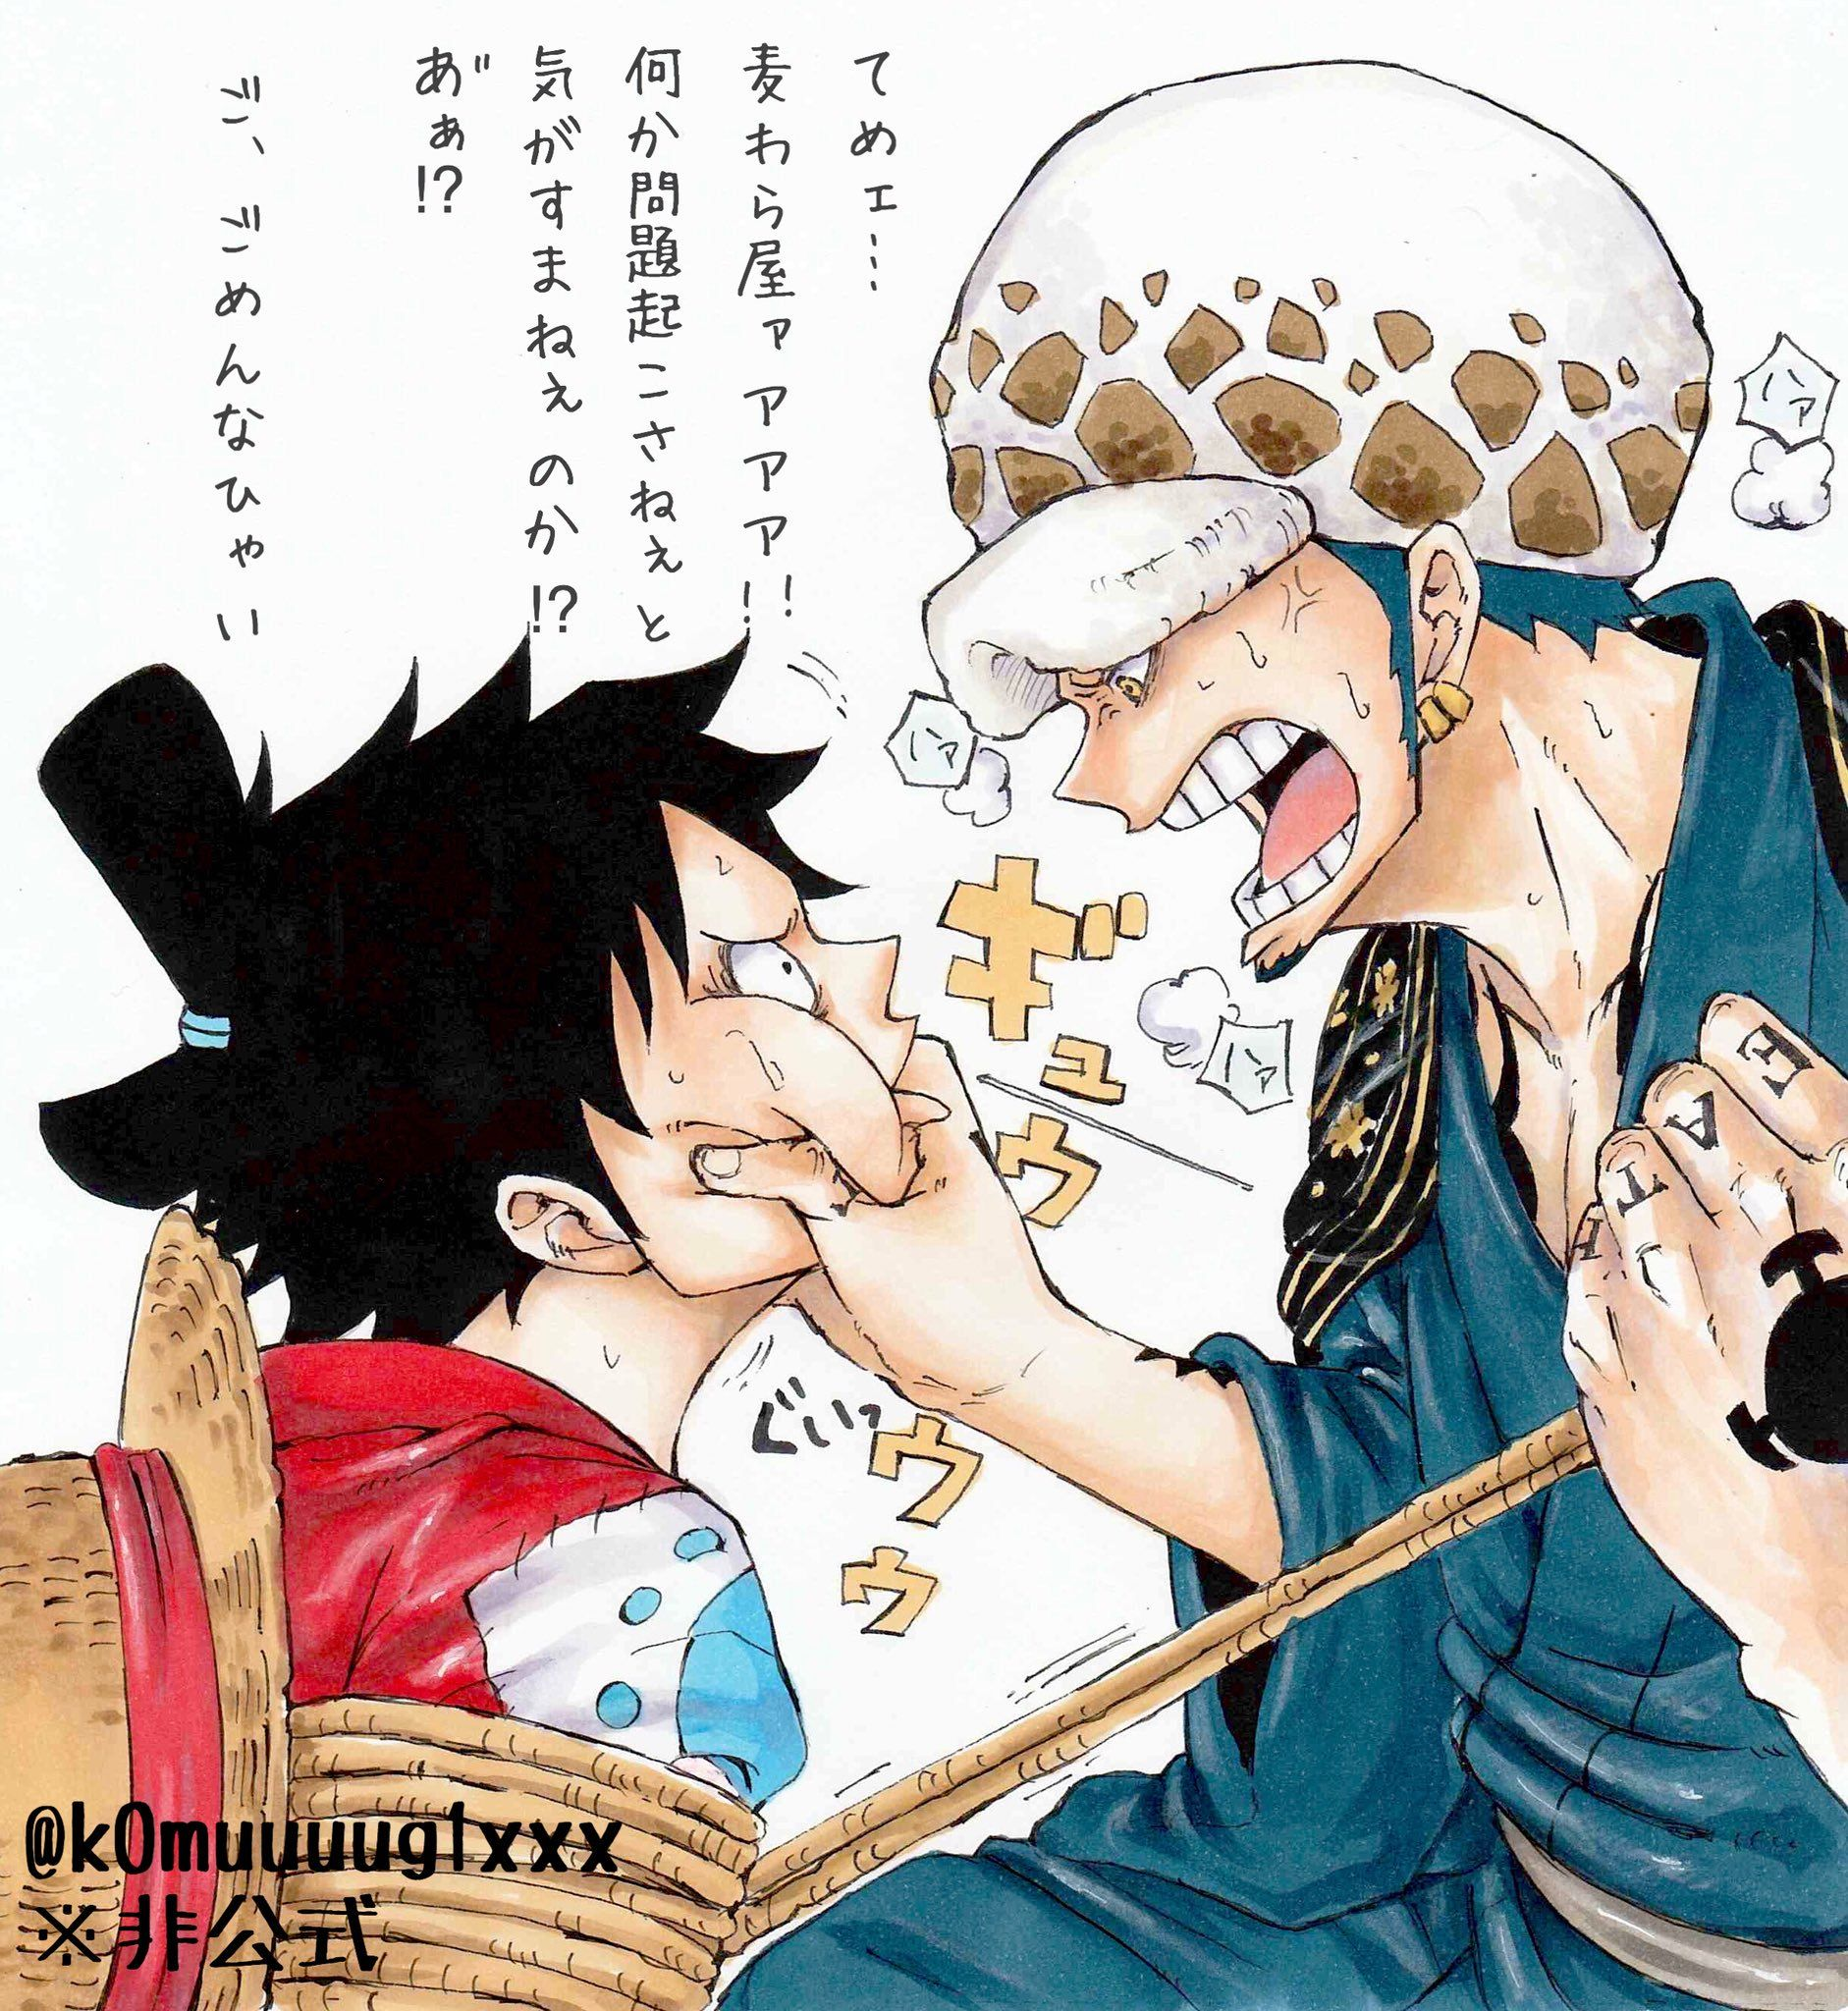 Twitter One Piece Drawing One Piece Anime One Piece Luffy